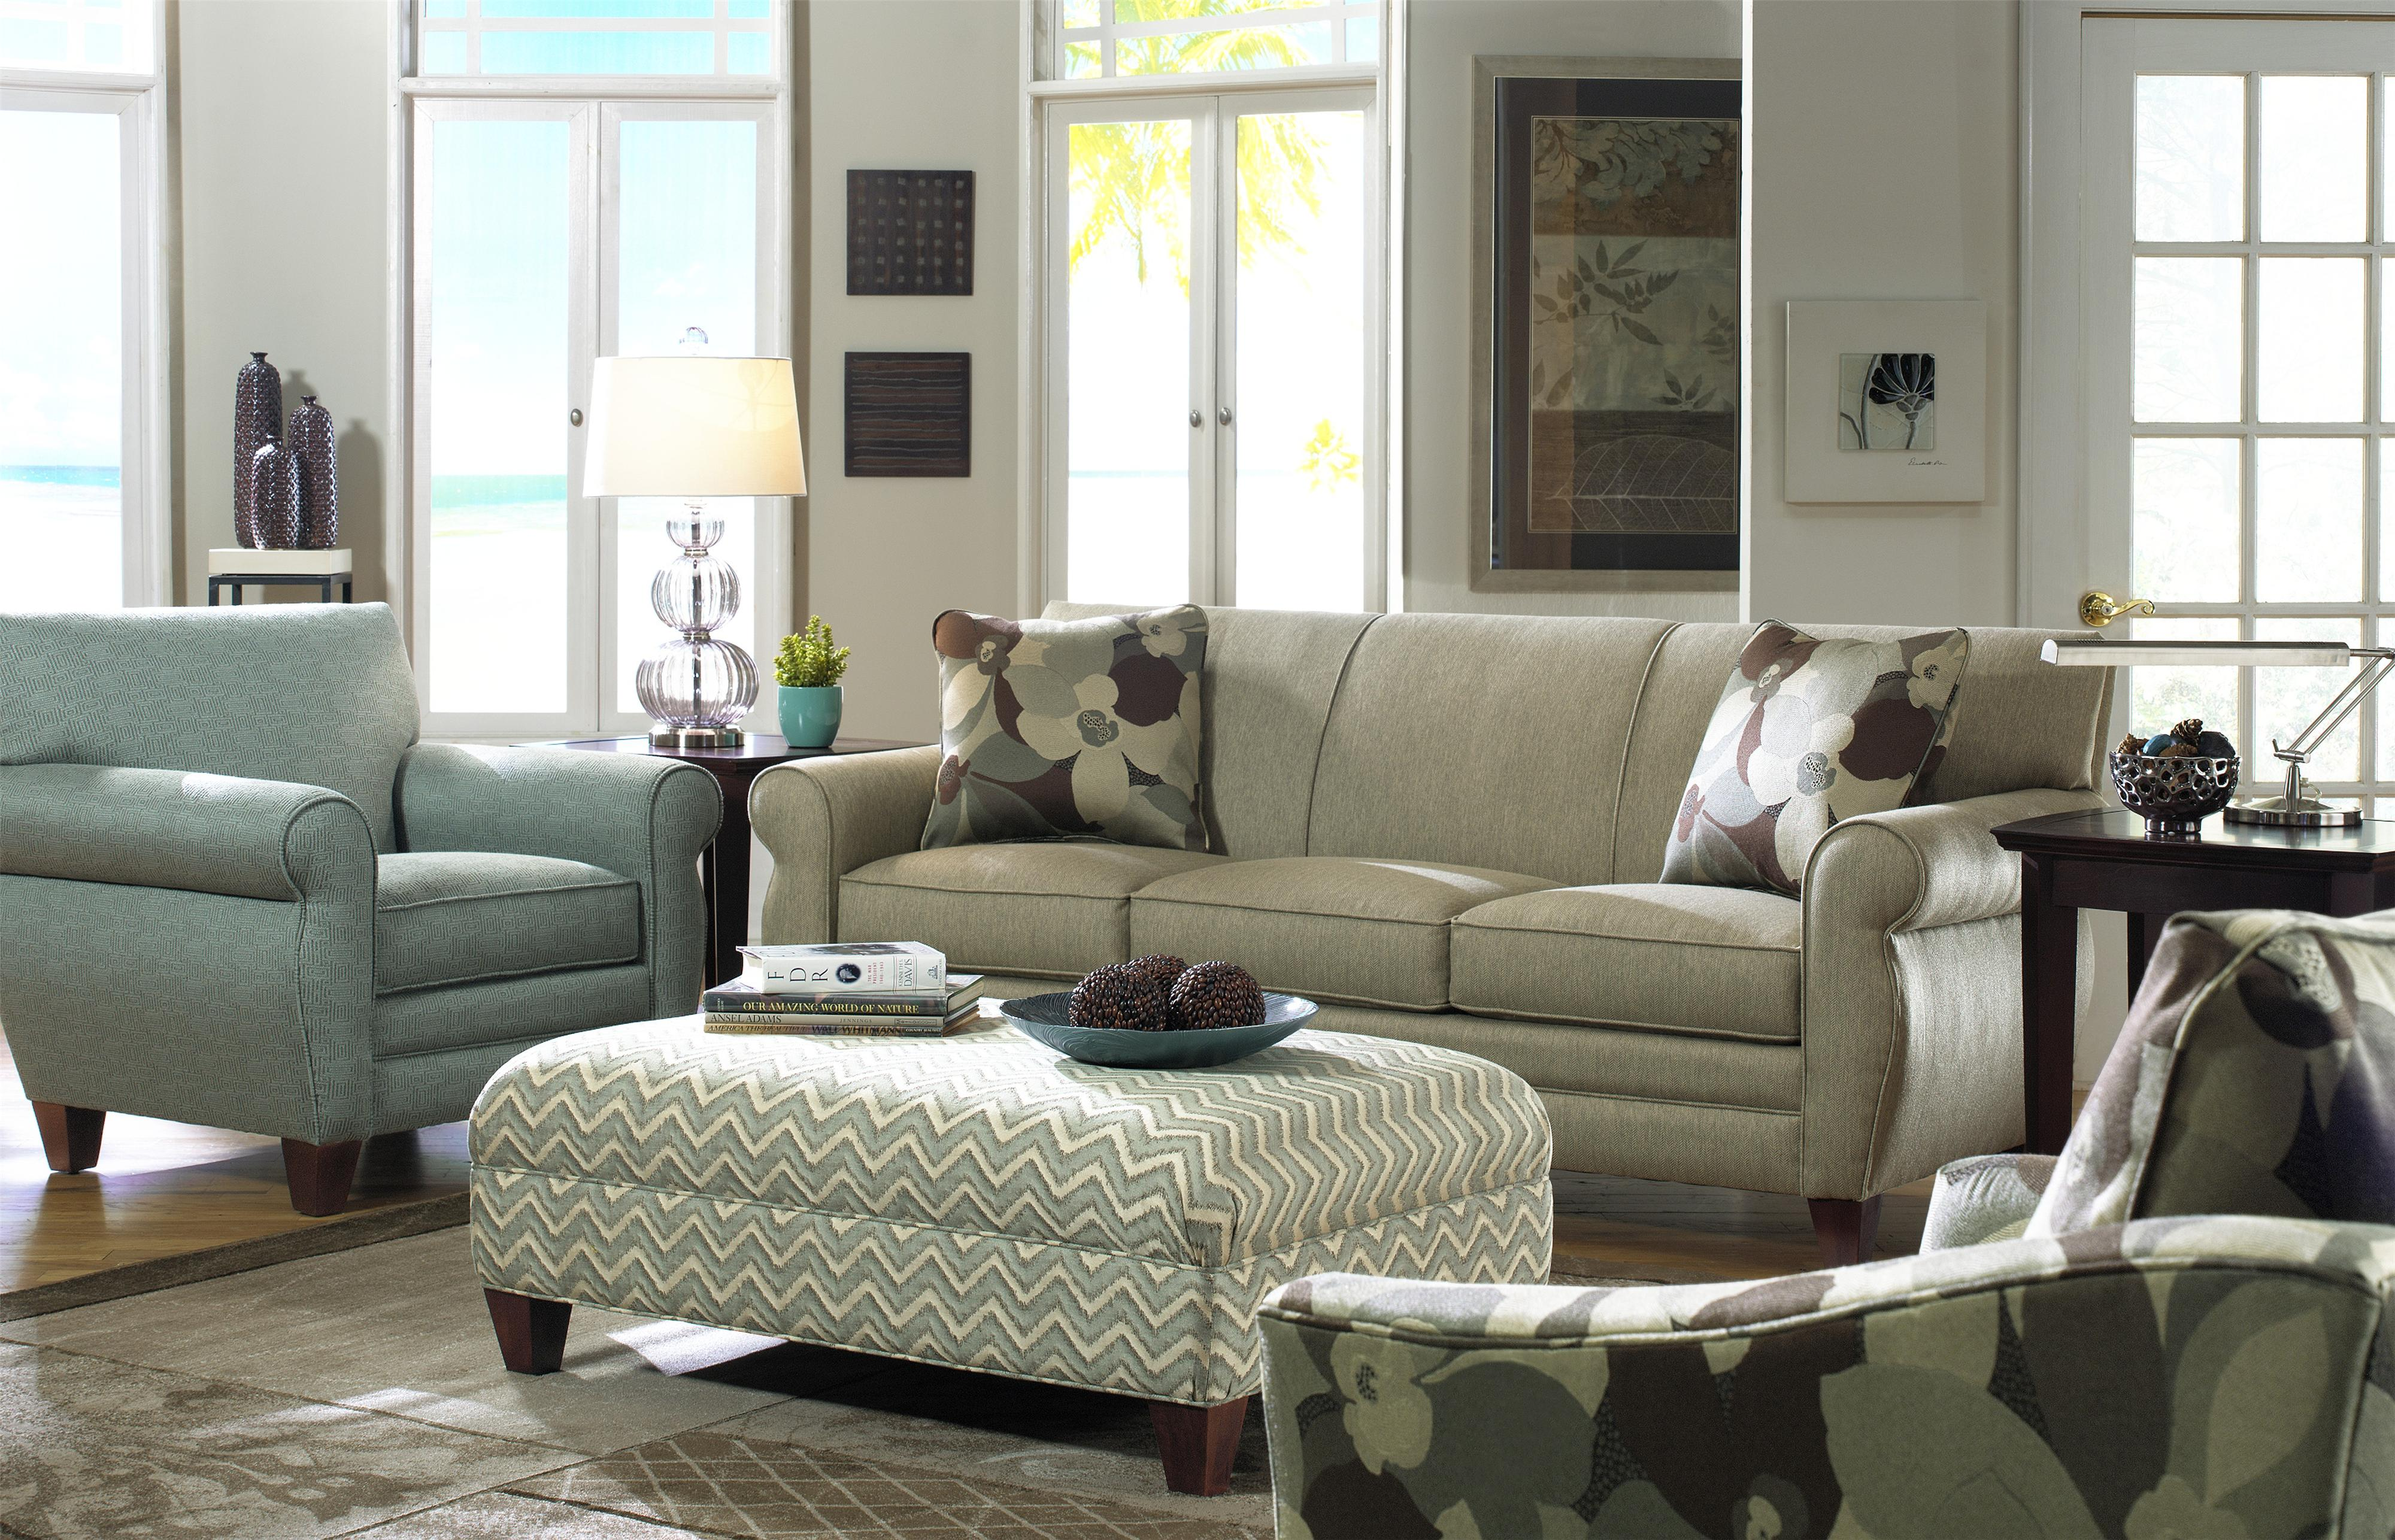 7388 Stationary Living Room Group by Craftmaster at Esprit Decor Home Furnishings